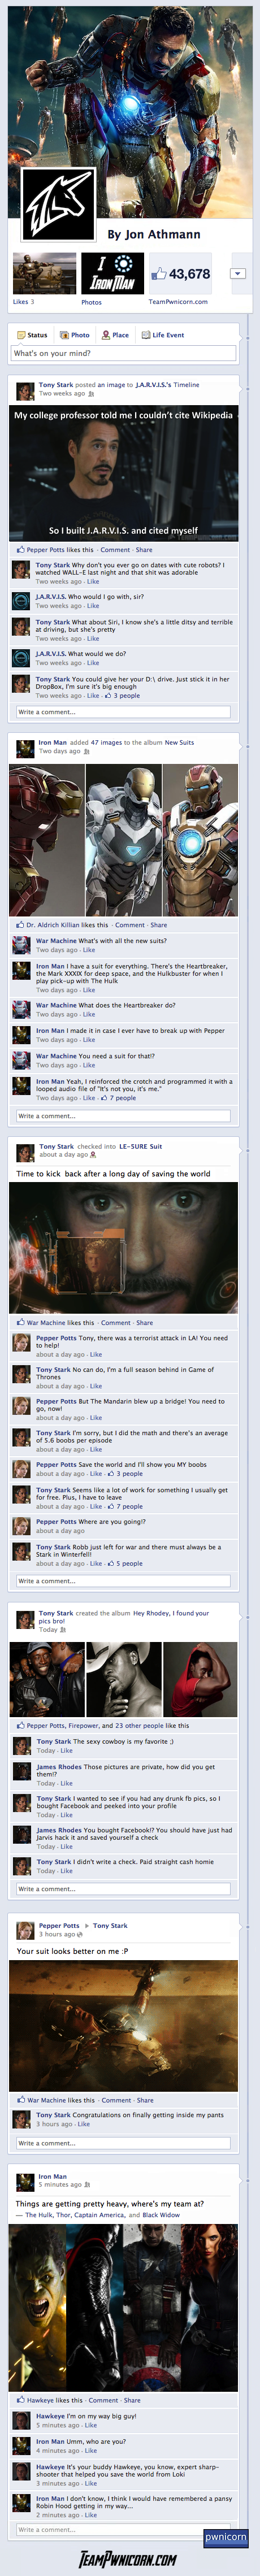 if Iron Man 3 was told through Facebook